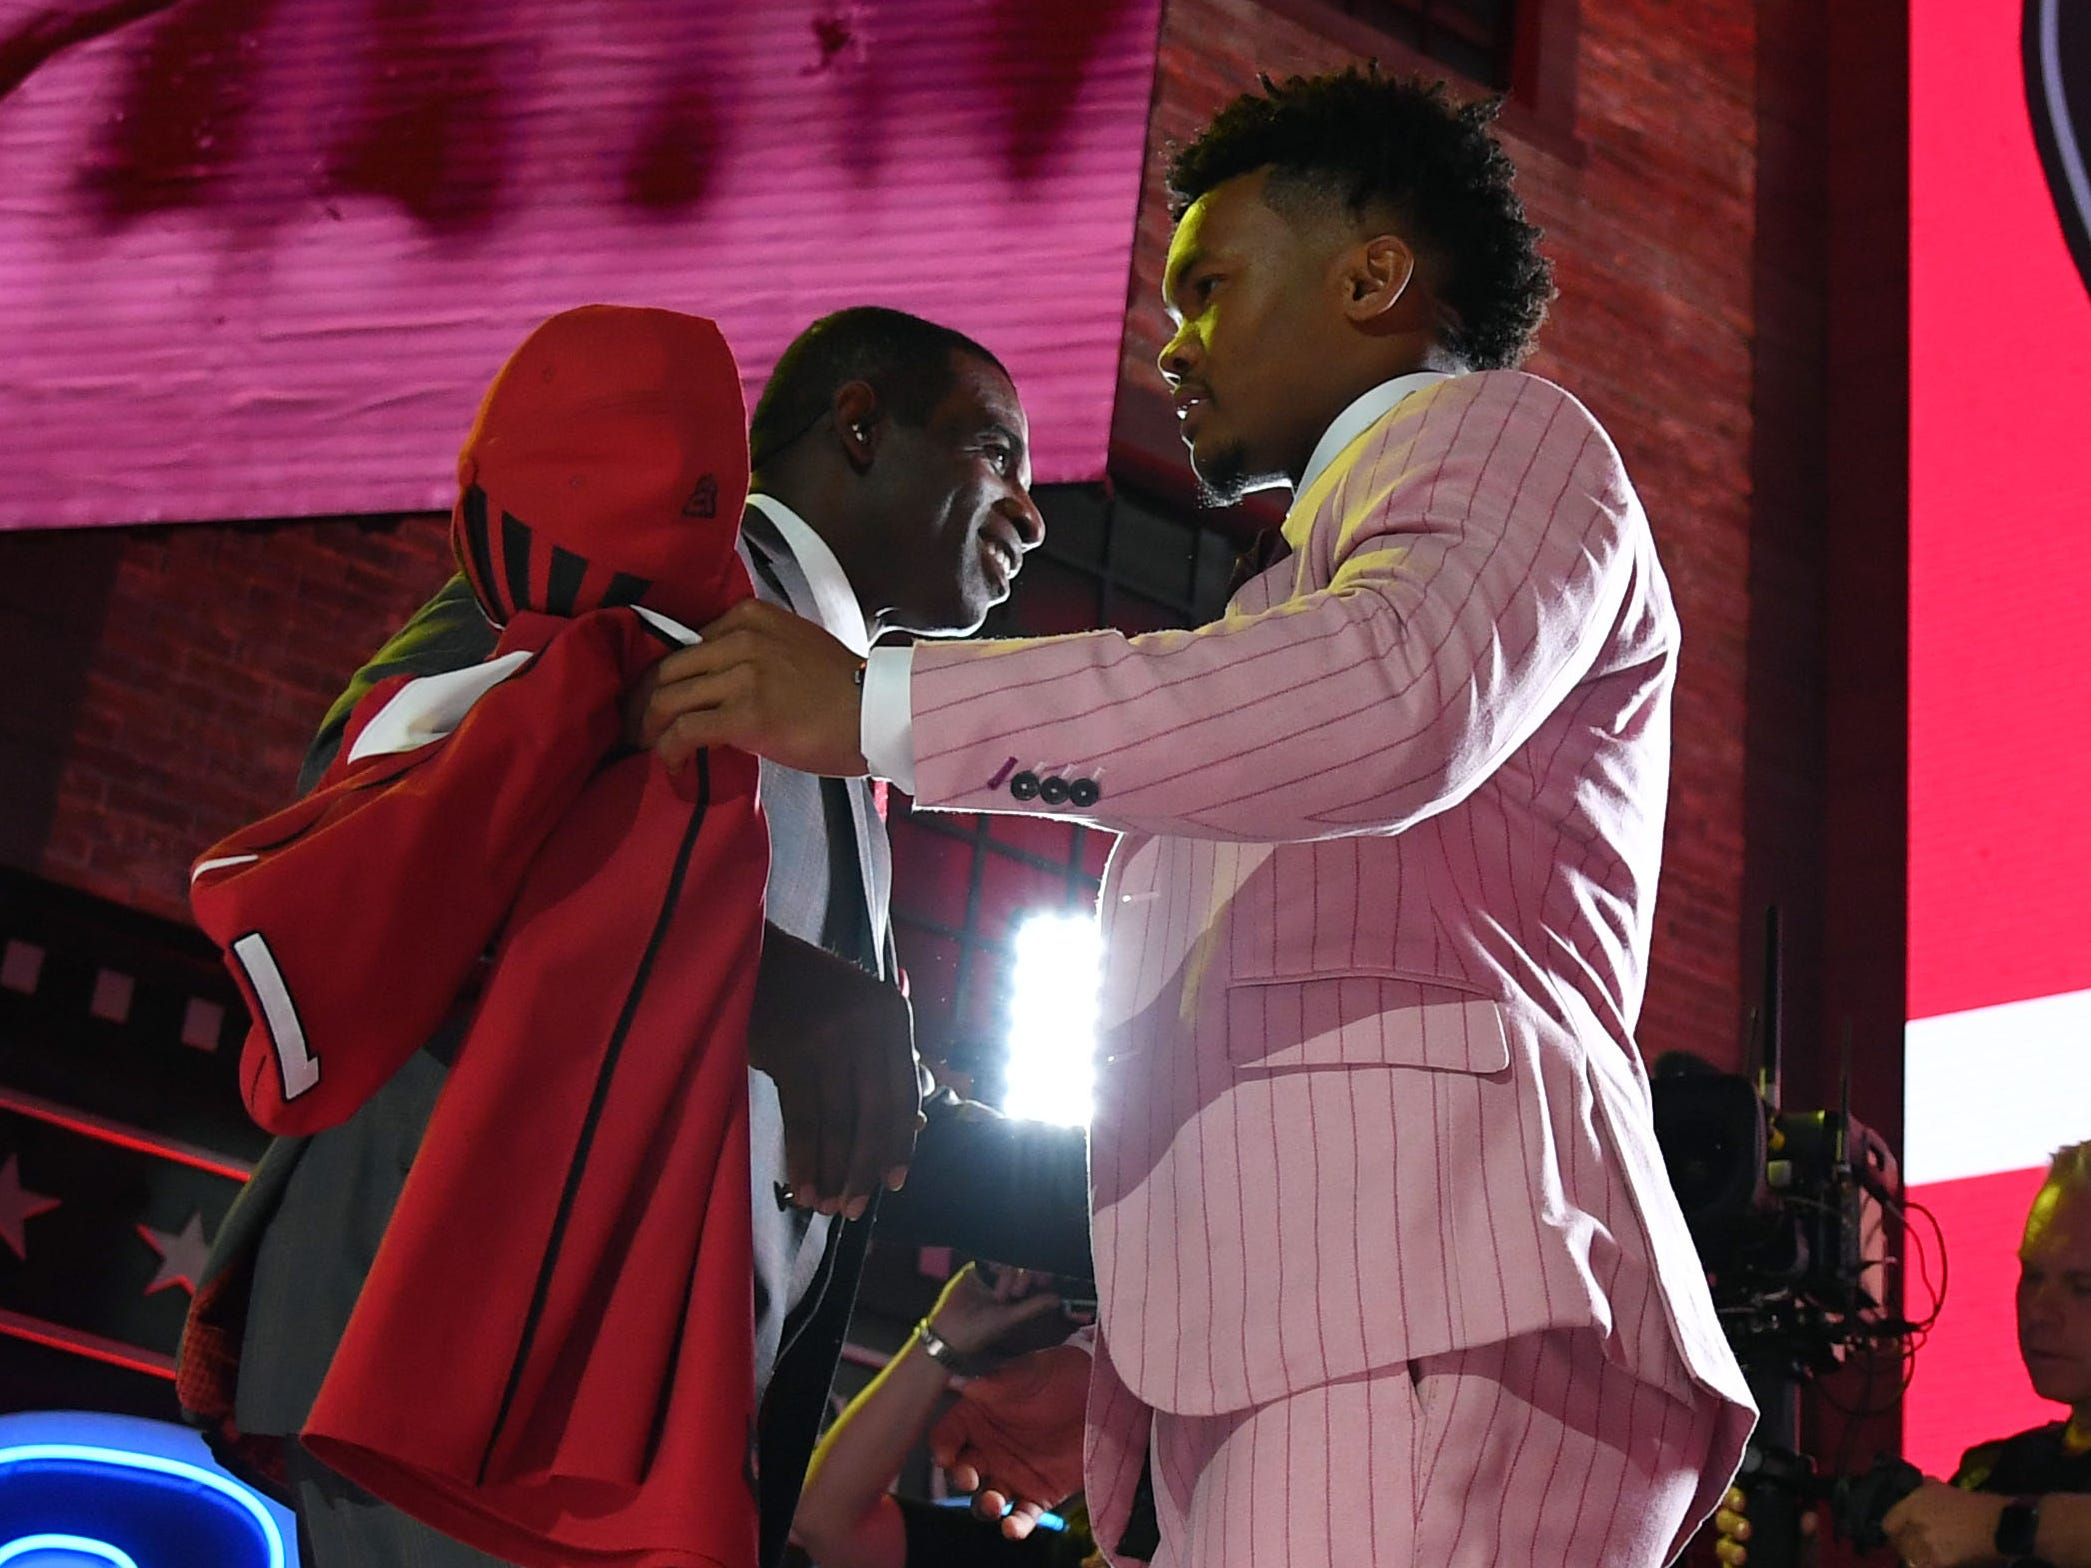 Apr 25, 2019; Nashville, TN, USA; Kyler Murray (Oklahoma) hugs Deion Sanders after he is selected as the number one overall pick to the Arizona Cardinals in the first round of the 2019 NFL Draft in Downtown Nashville.